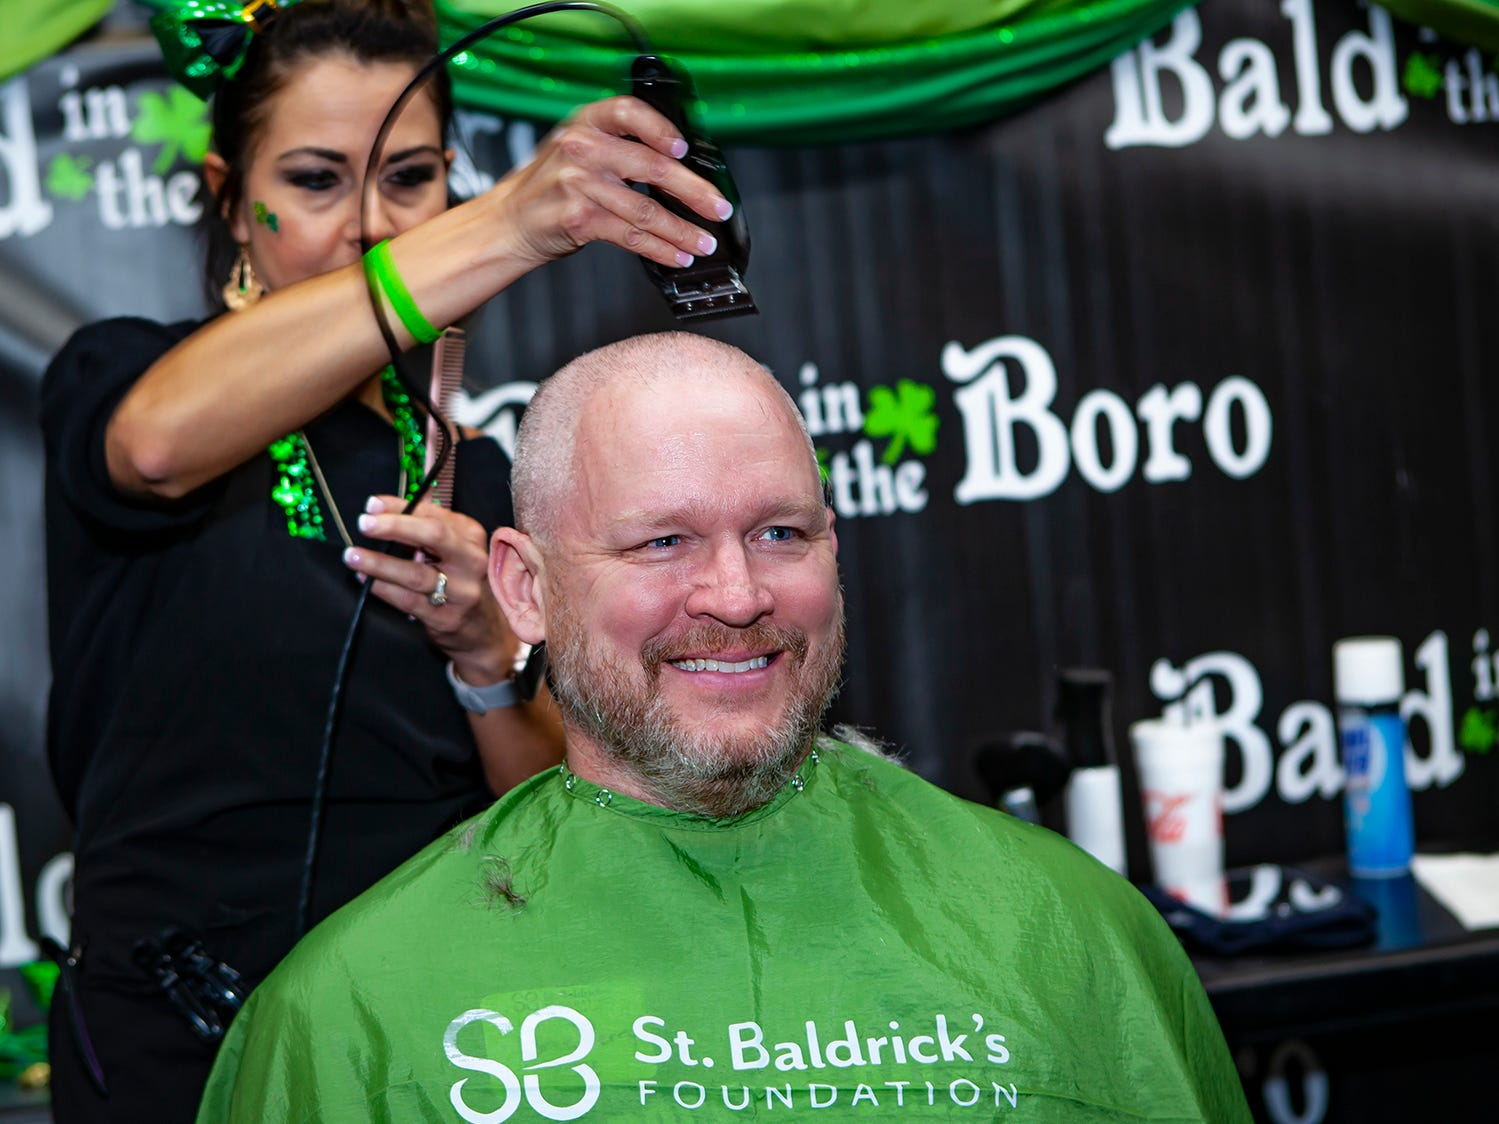 Greg Perry is calm while going under the clippers for the first time at Bald in the Boro. Now in its ninth year, the fundraiser for the St. Baldrick's Foundation was held Friday, March 15, 2019 at Lanes, Trains and Automobiles in Murfreesboro.